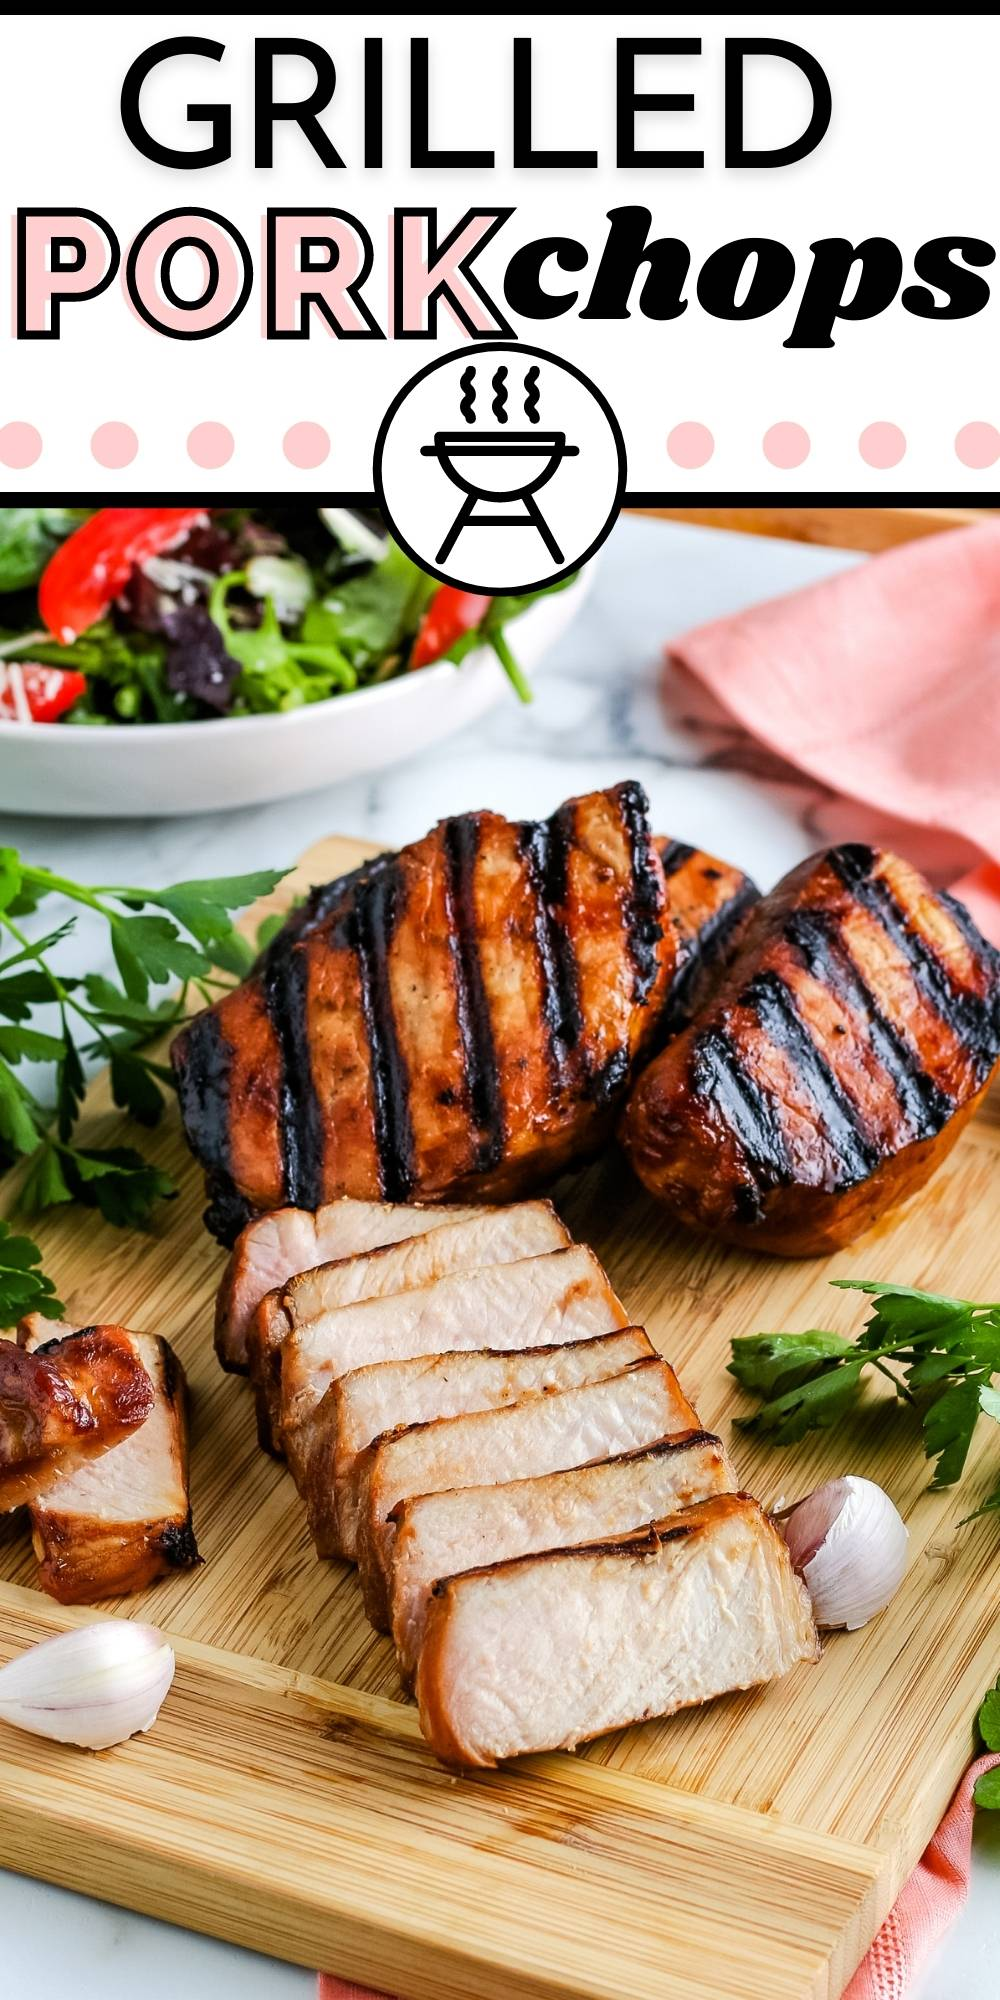 This is the Best Grilled Pork Chops recipe. It's easy to make, and it's a family favorite during the summer. The grilled pork chop marinade helps keep the meat juicy. via @easybudgetrecipes